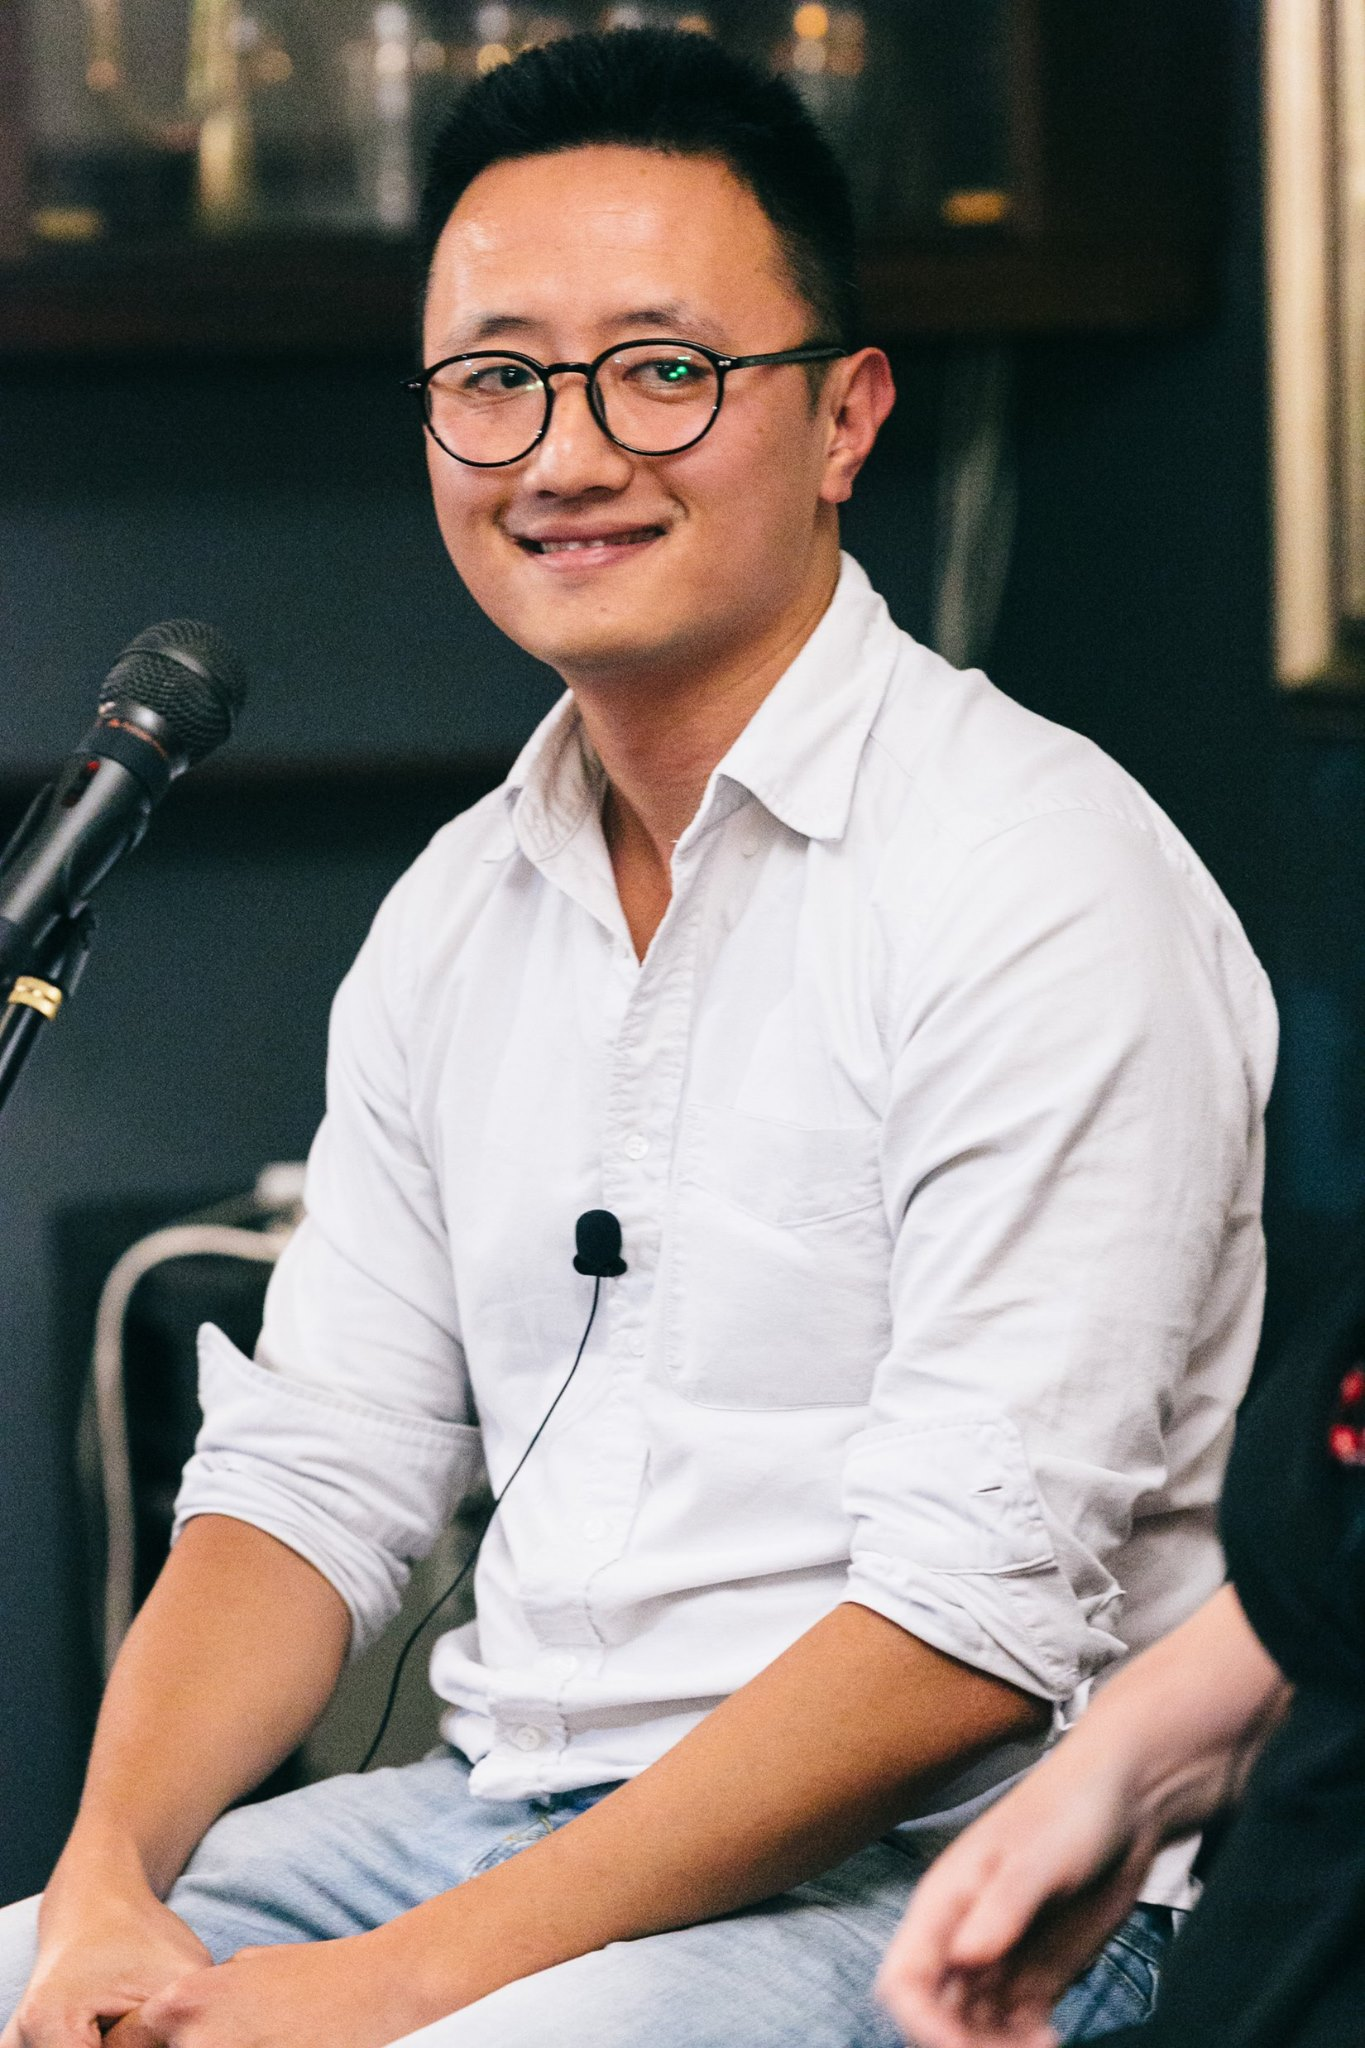 The very accessible, knowledgeable and humorous Rick Chen, co-founder of Pozible